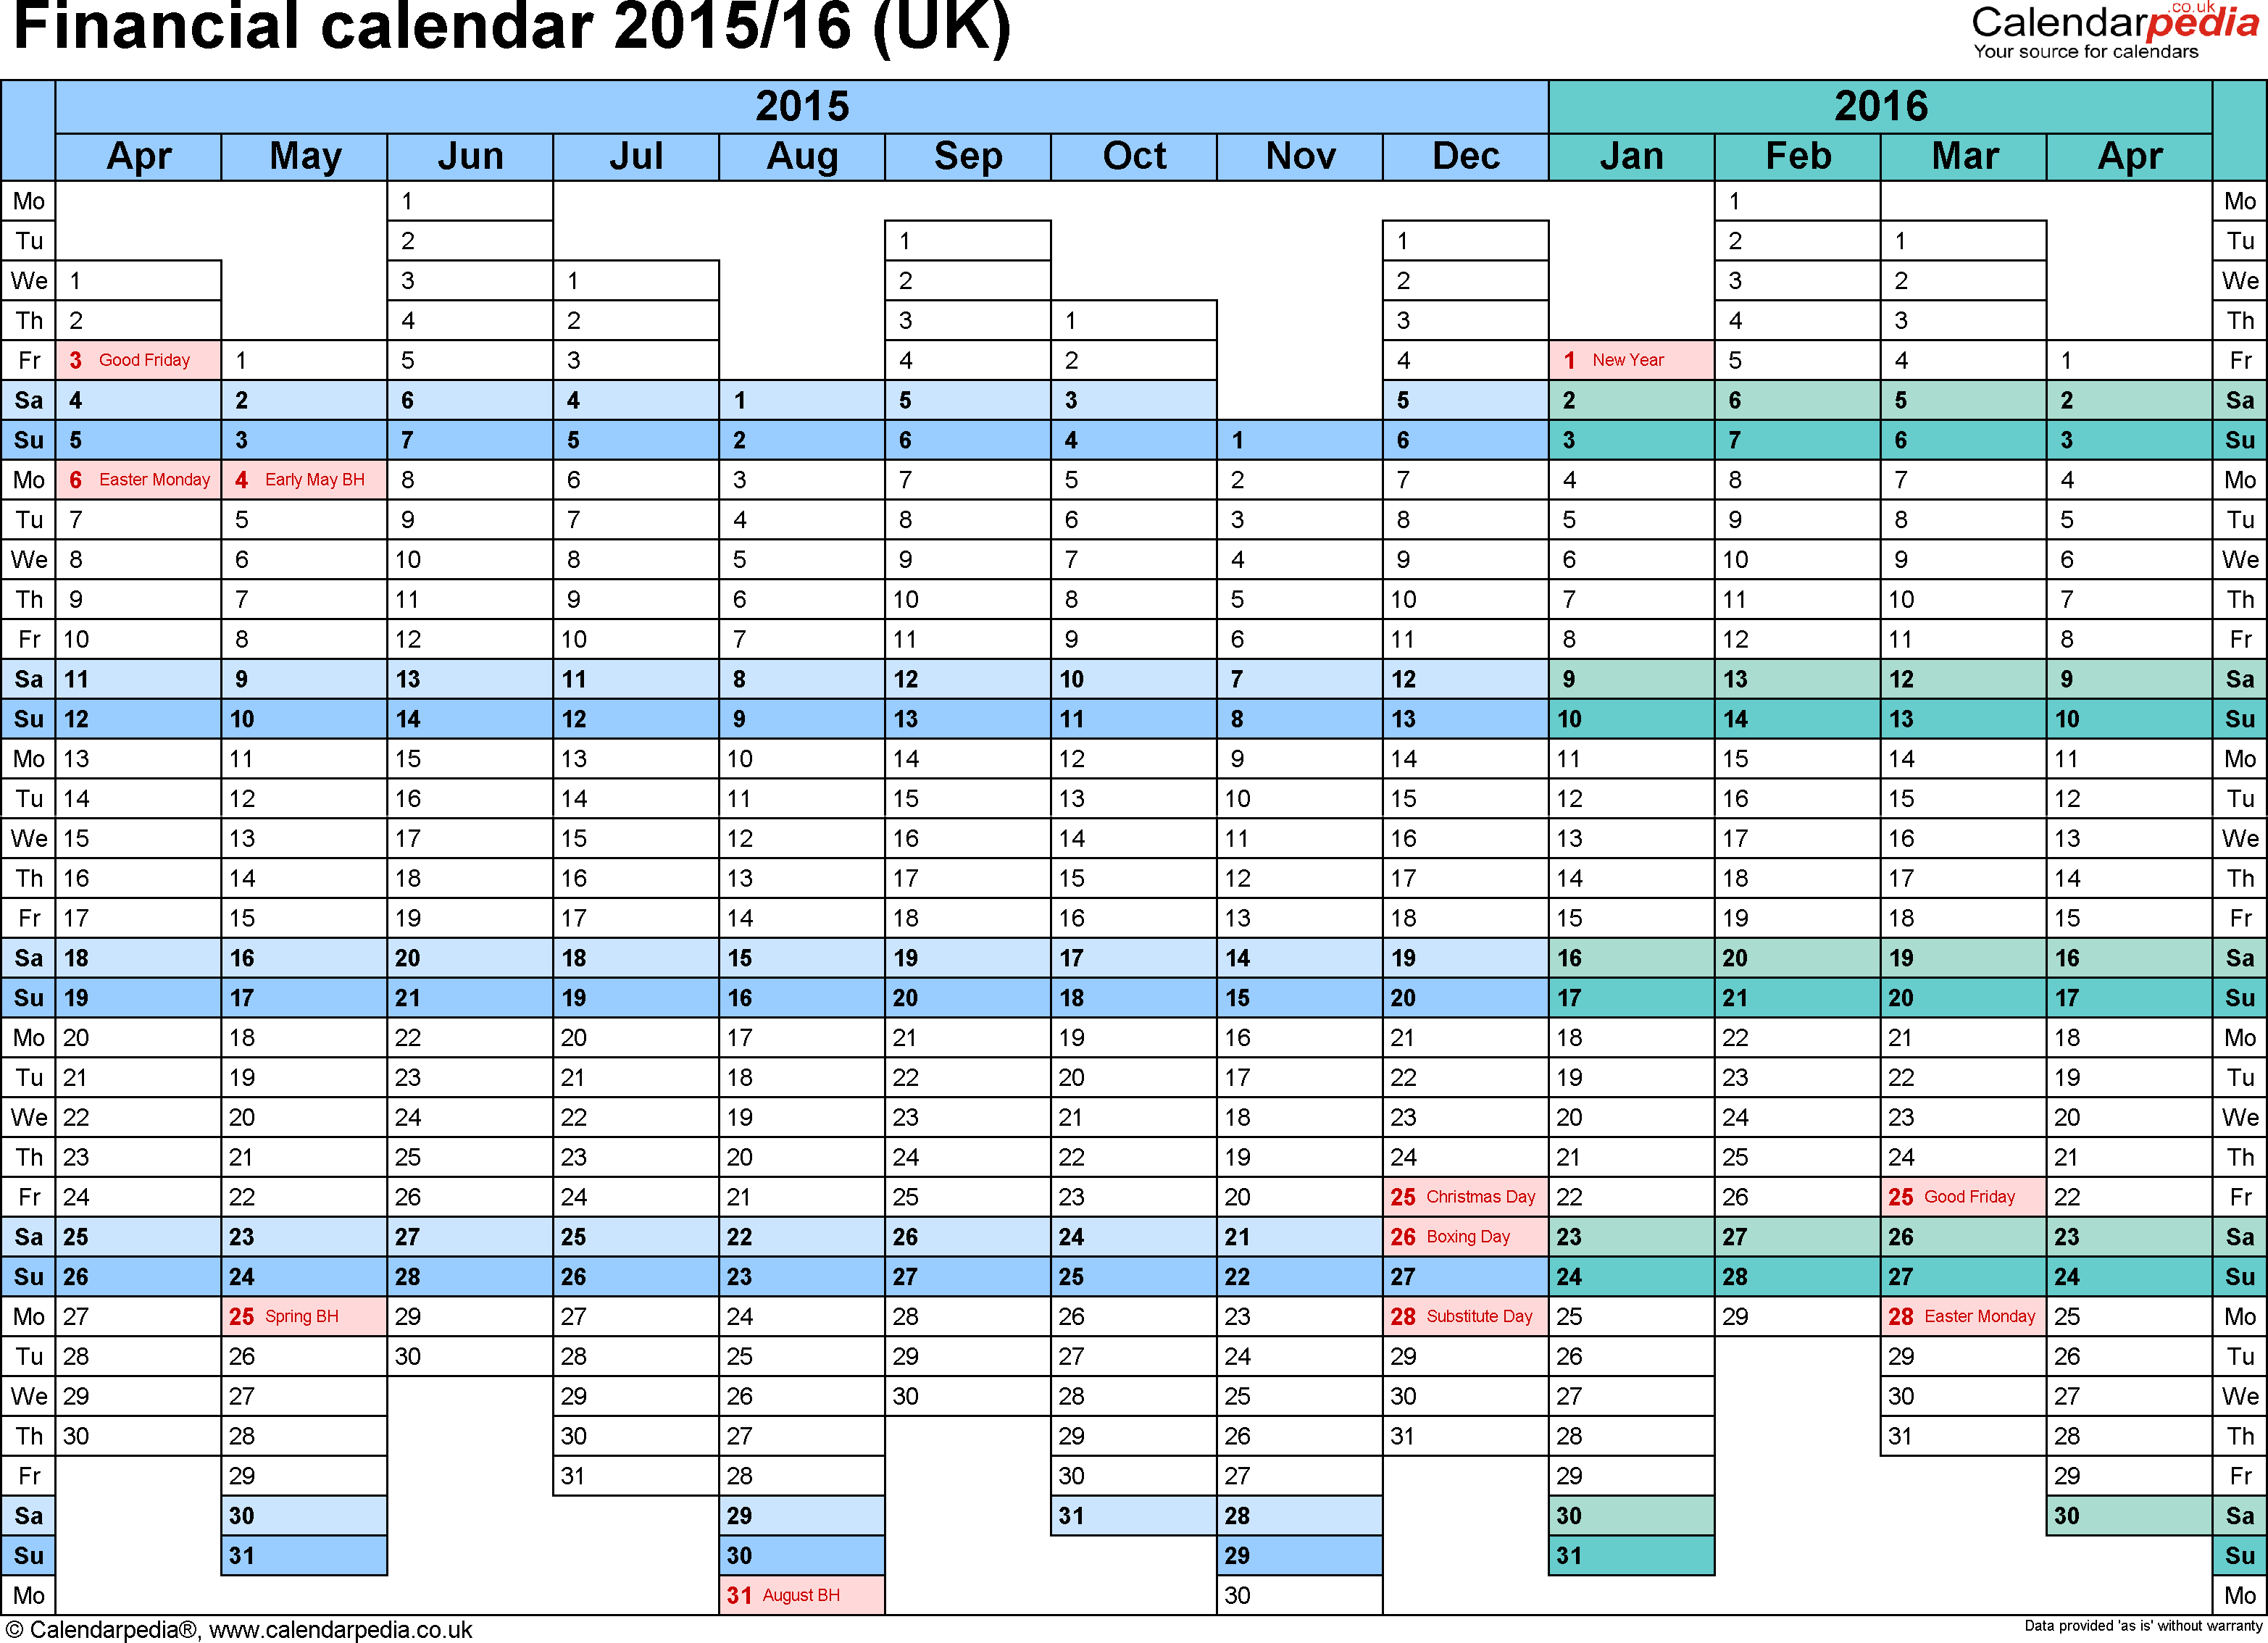 Template 1: PDF template for financial calendar 2015/2016, landscape orientation, 1 page, A4, days aligned